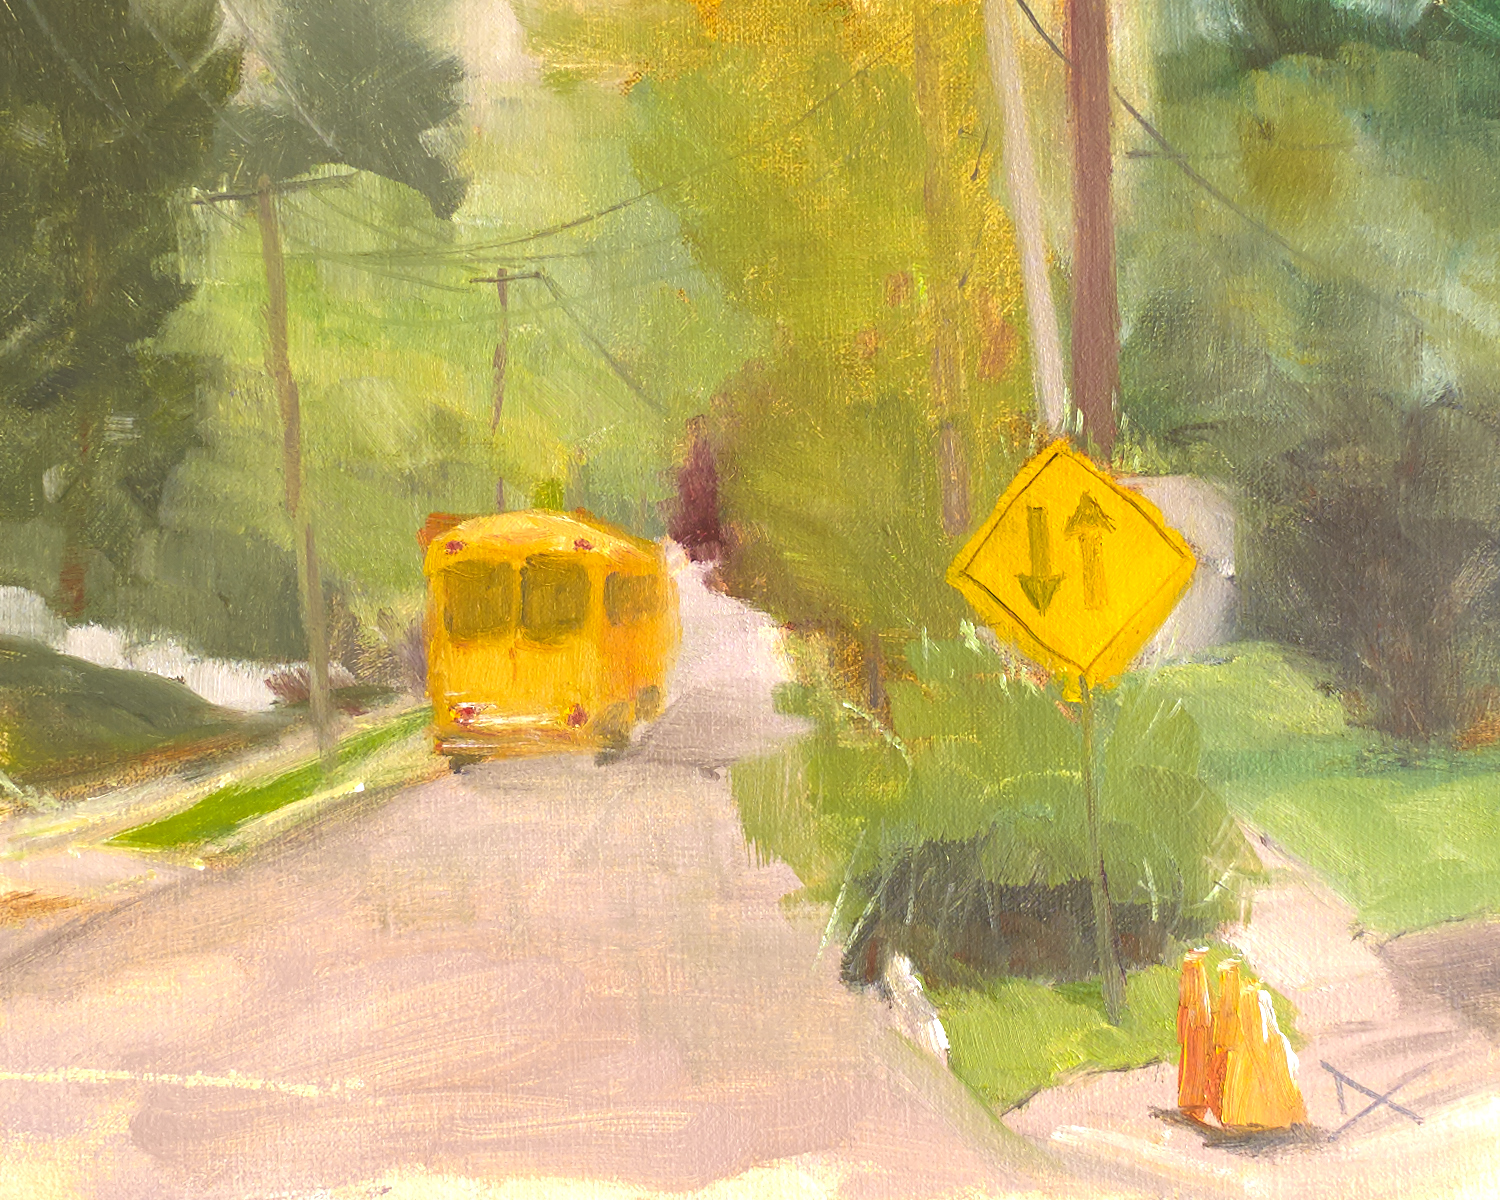 The School Bus, the two-way sign, and the three traffic cones